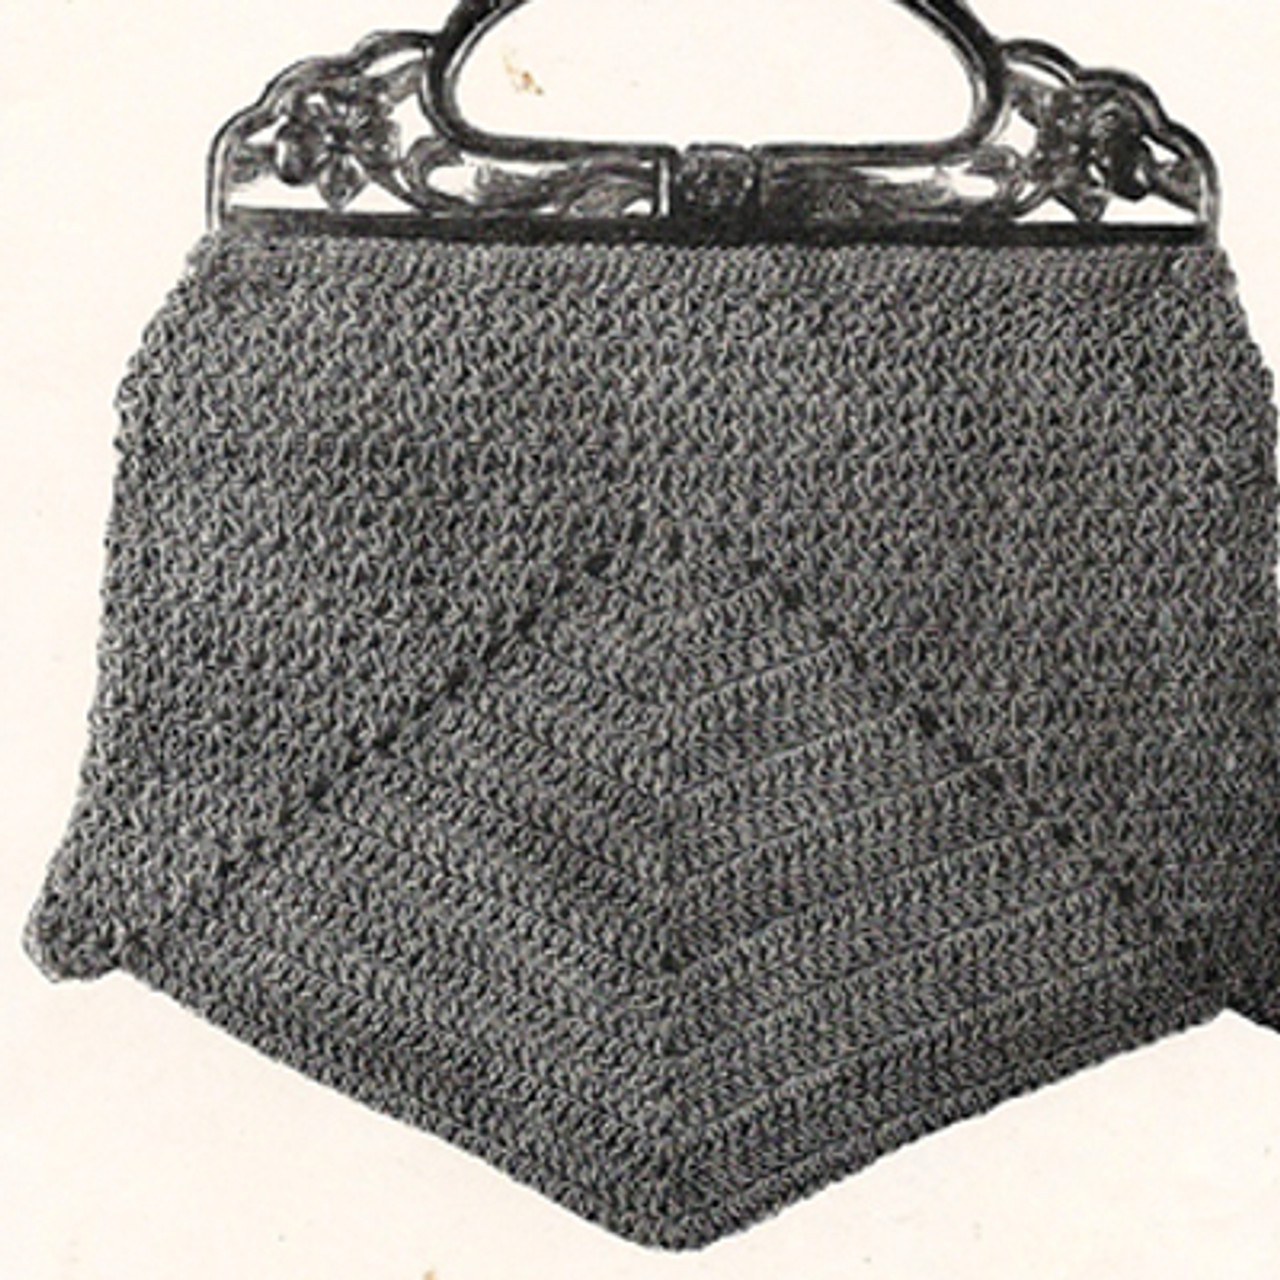 Vintage Crochet Bag Pattern with Wood Handle